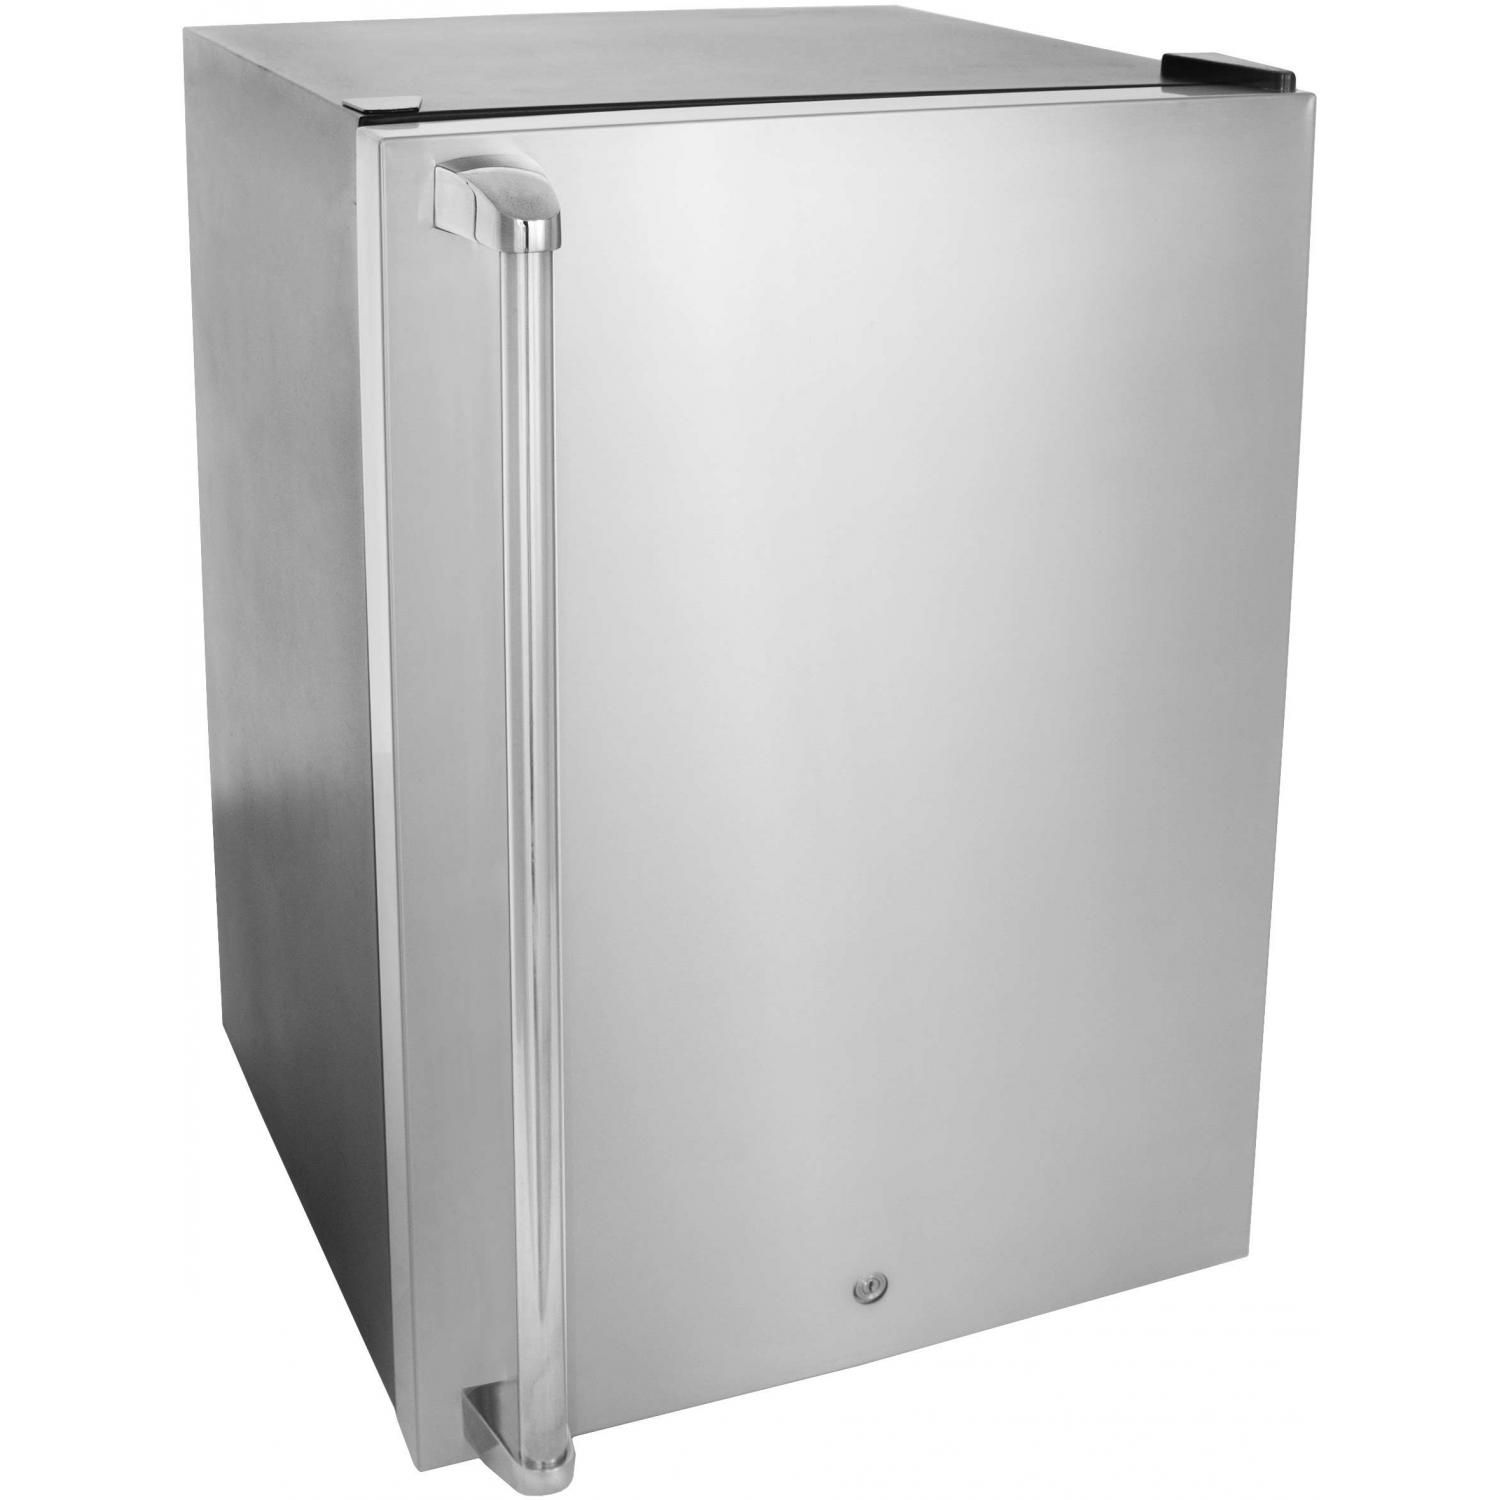 RCS 21-Inch 4.6 Cu. Ft. Right Hinge Compact Refrigerator With ...